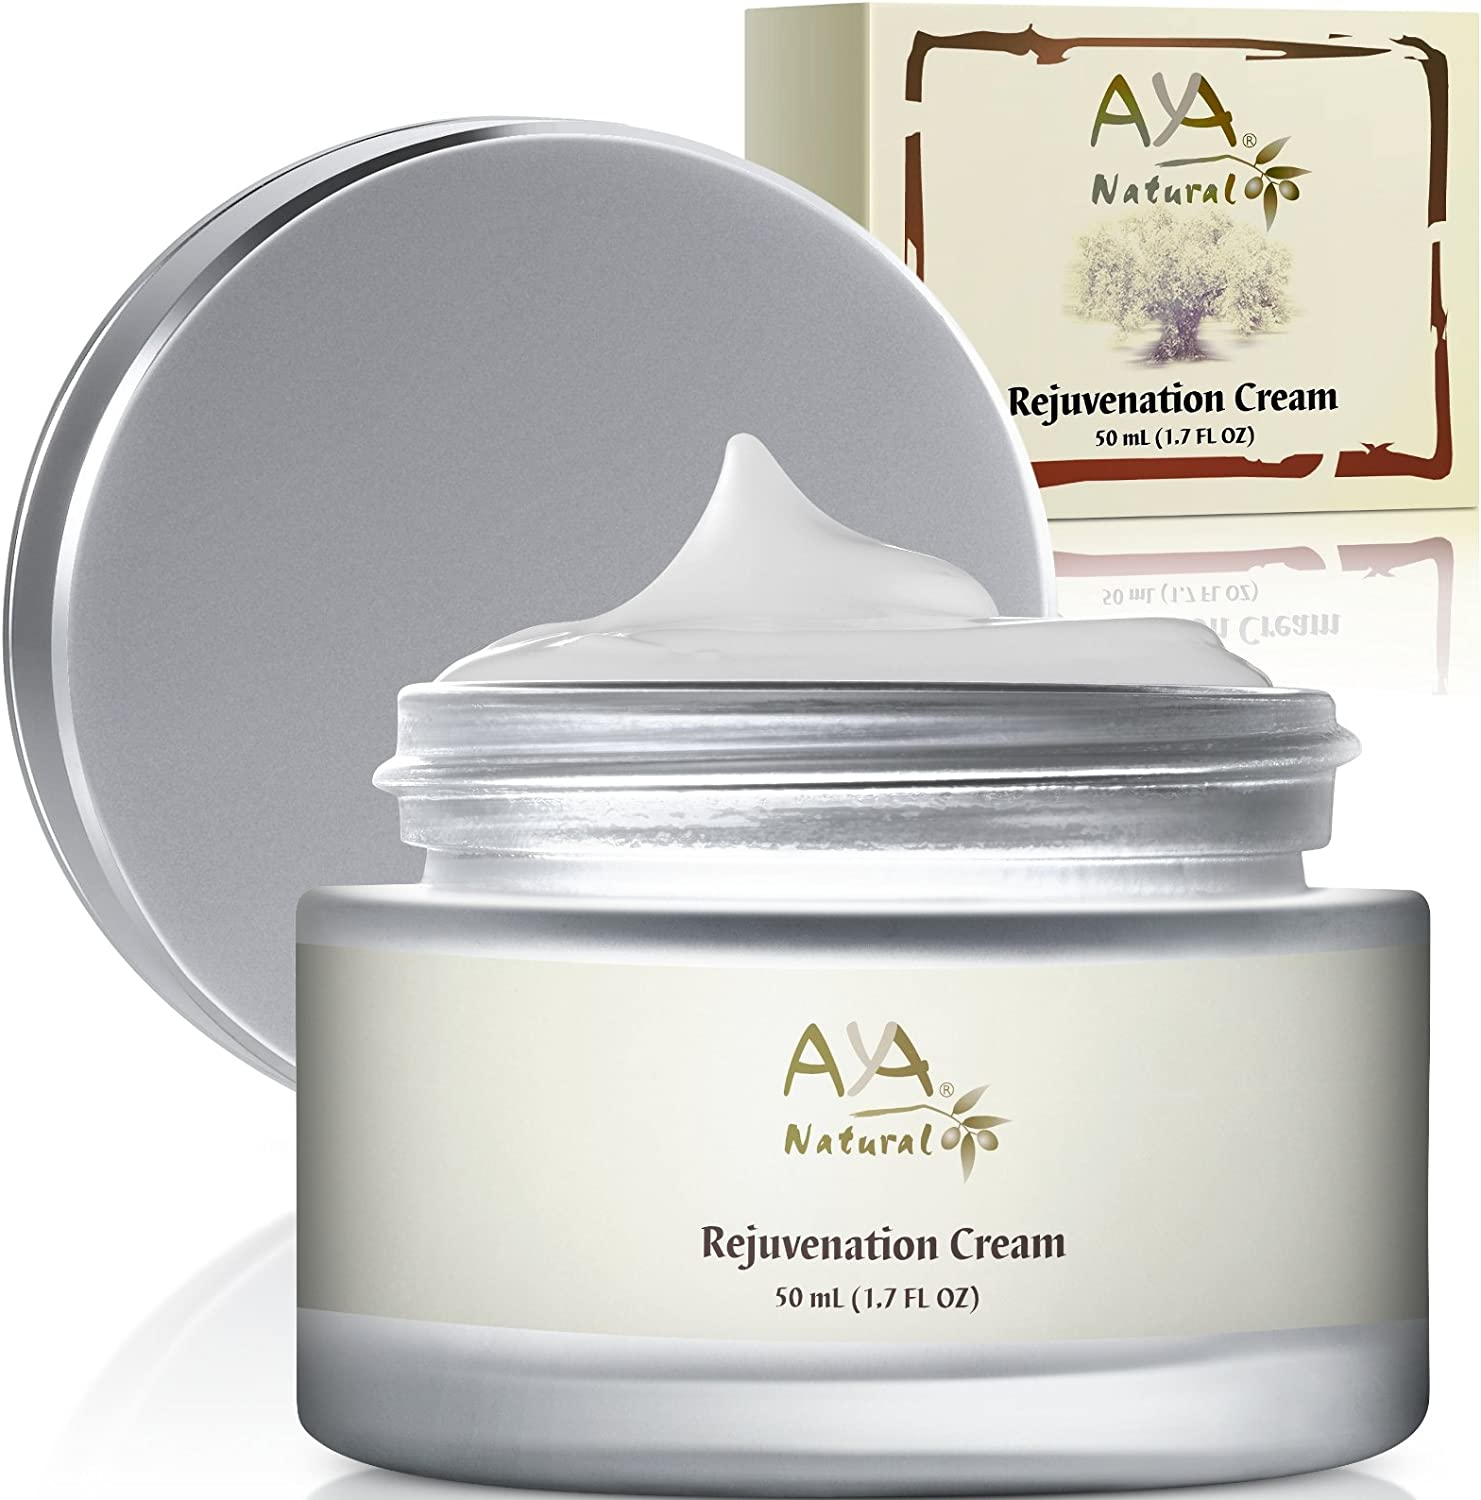 Aya Natural Anti Aging Face Cream - Natural Vegan Smoothing Nourishing Care